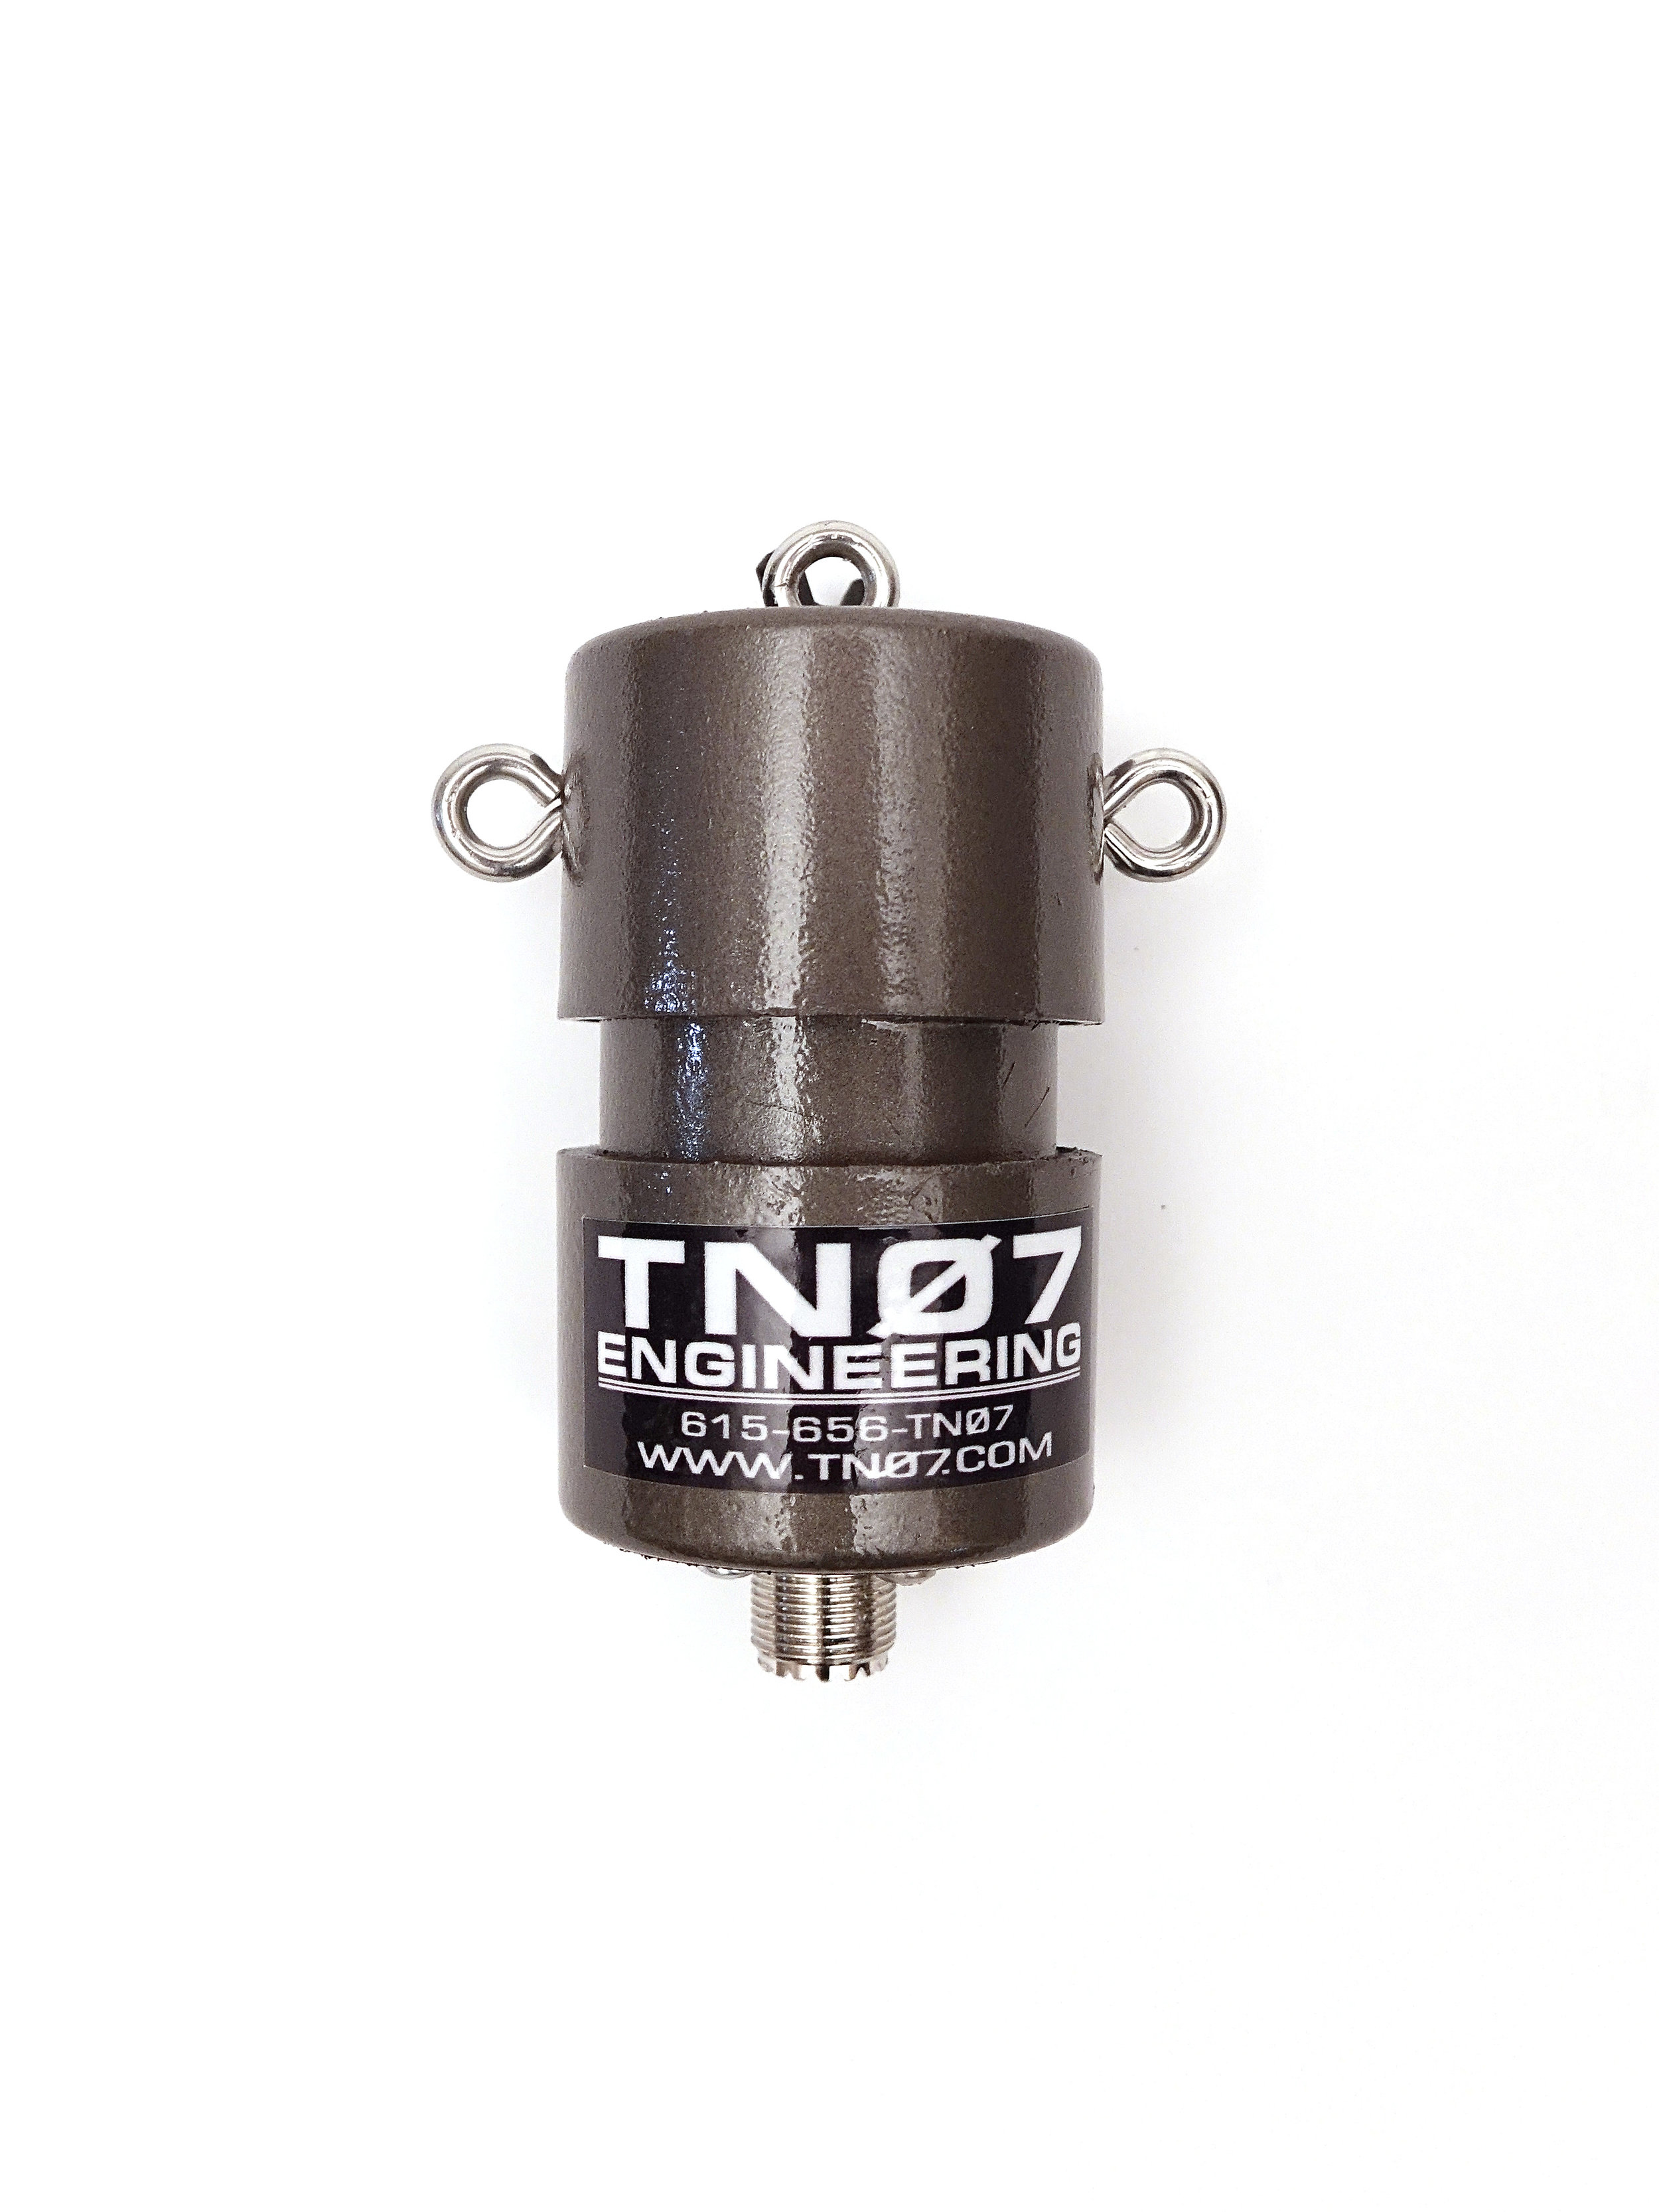 Matching Device used in IMD-109 Go Anywhere Antenna